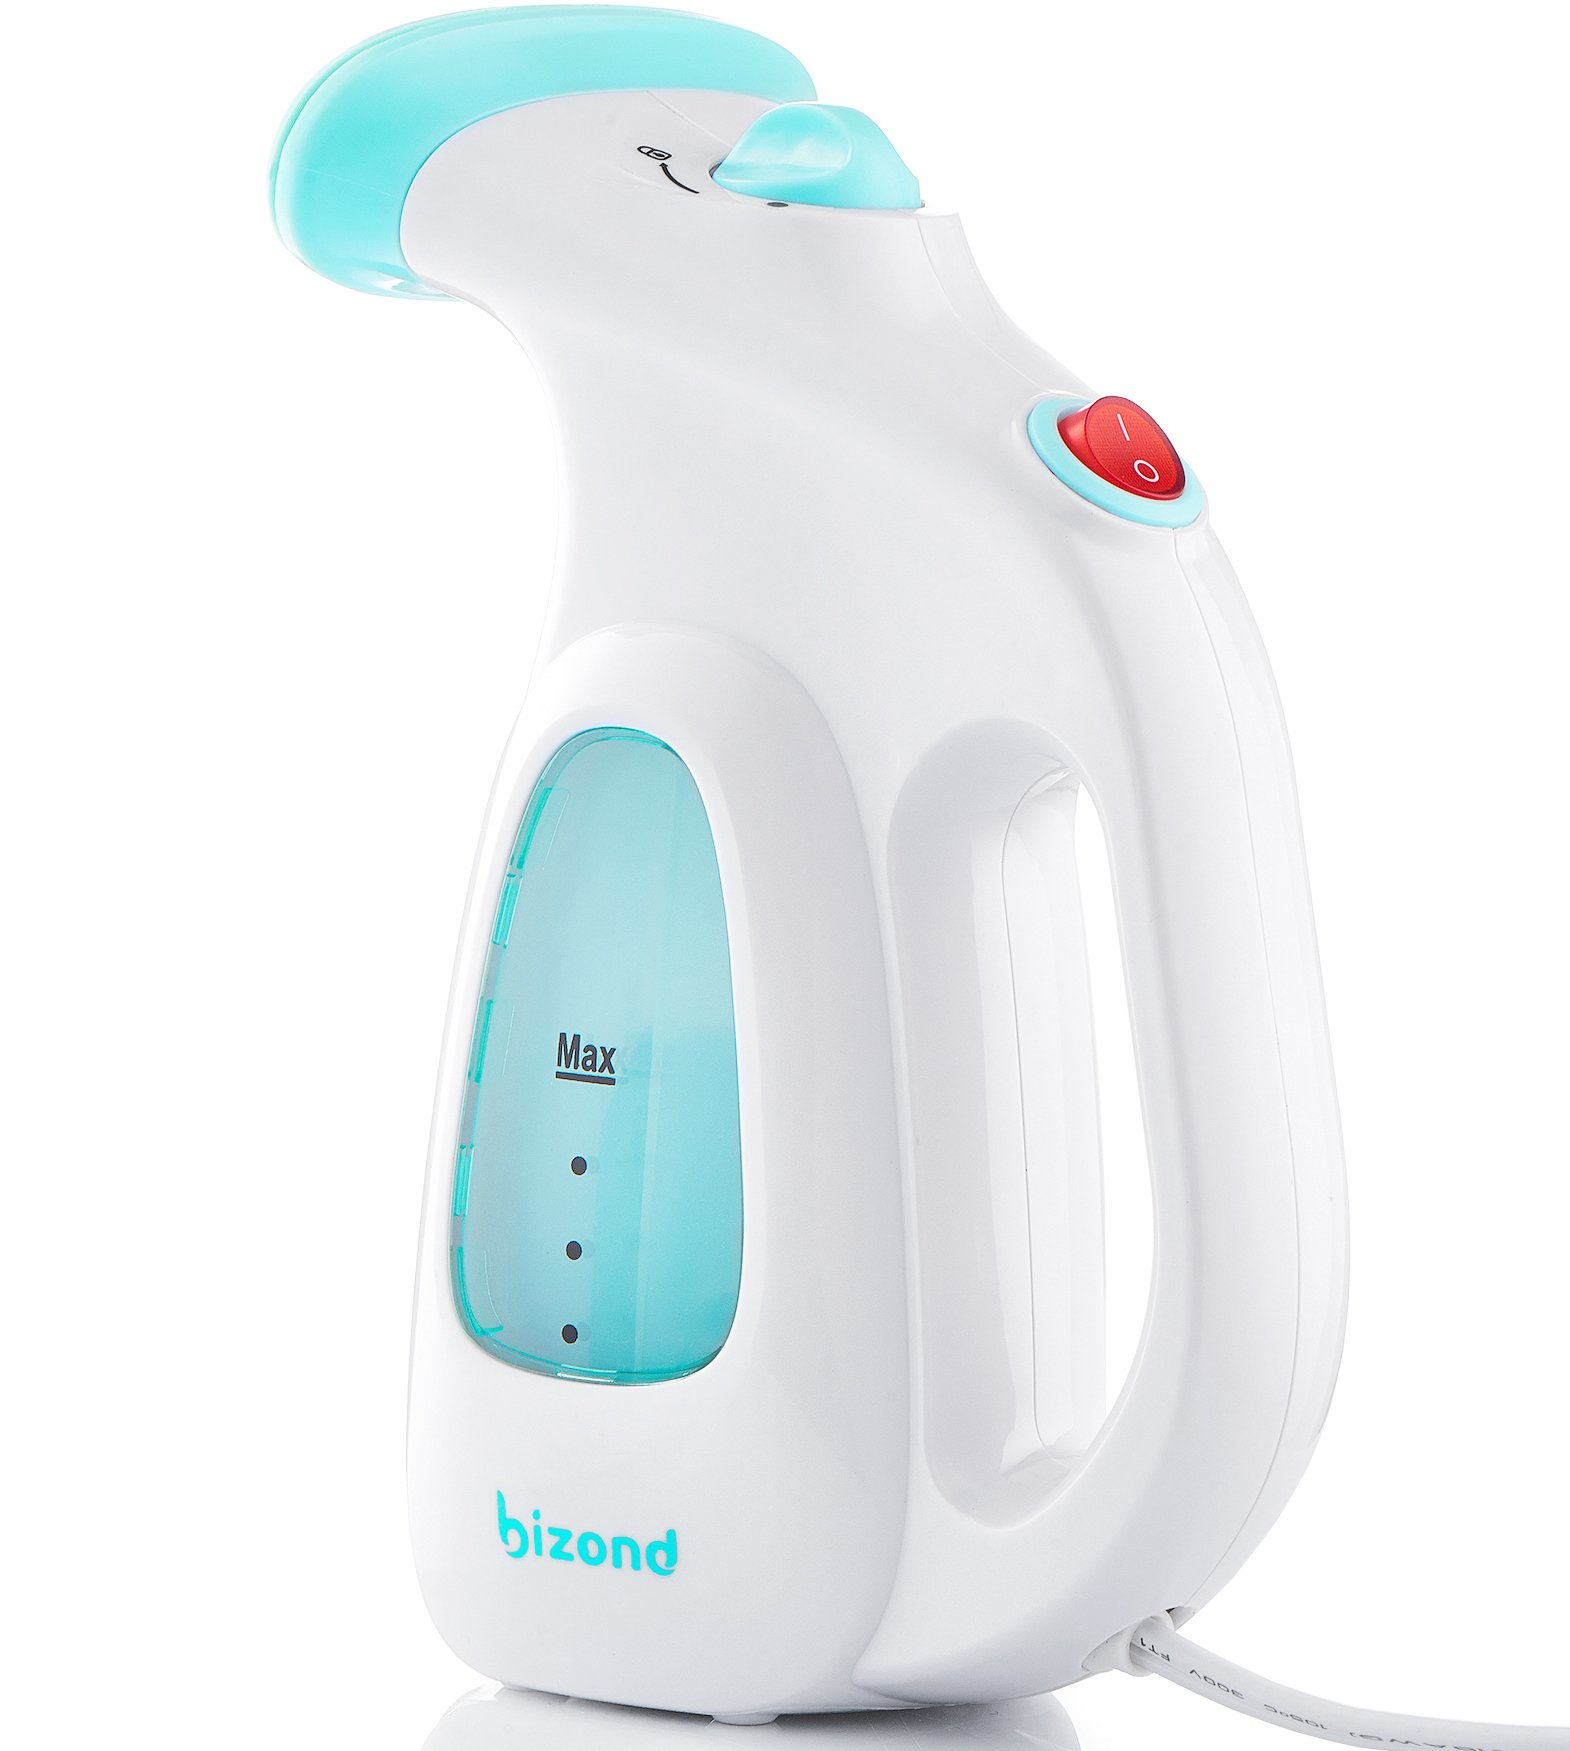 Steamer for Clothes, Garment, Fabric - Portable, Handheld Steamer - Safe and Little Handy, Anti-Spill - Home and Travel - Compact Mini Steamer for Shirt, Dresses, Curtain with Accessories (White) by BIZOND